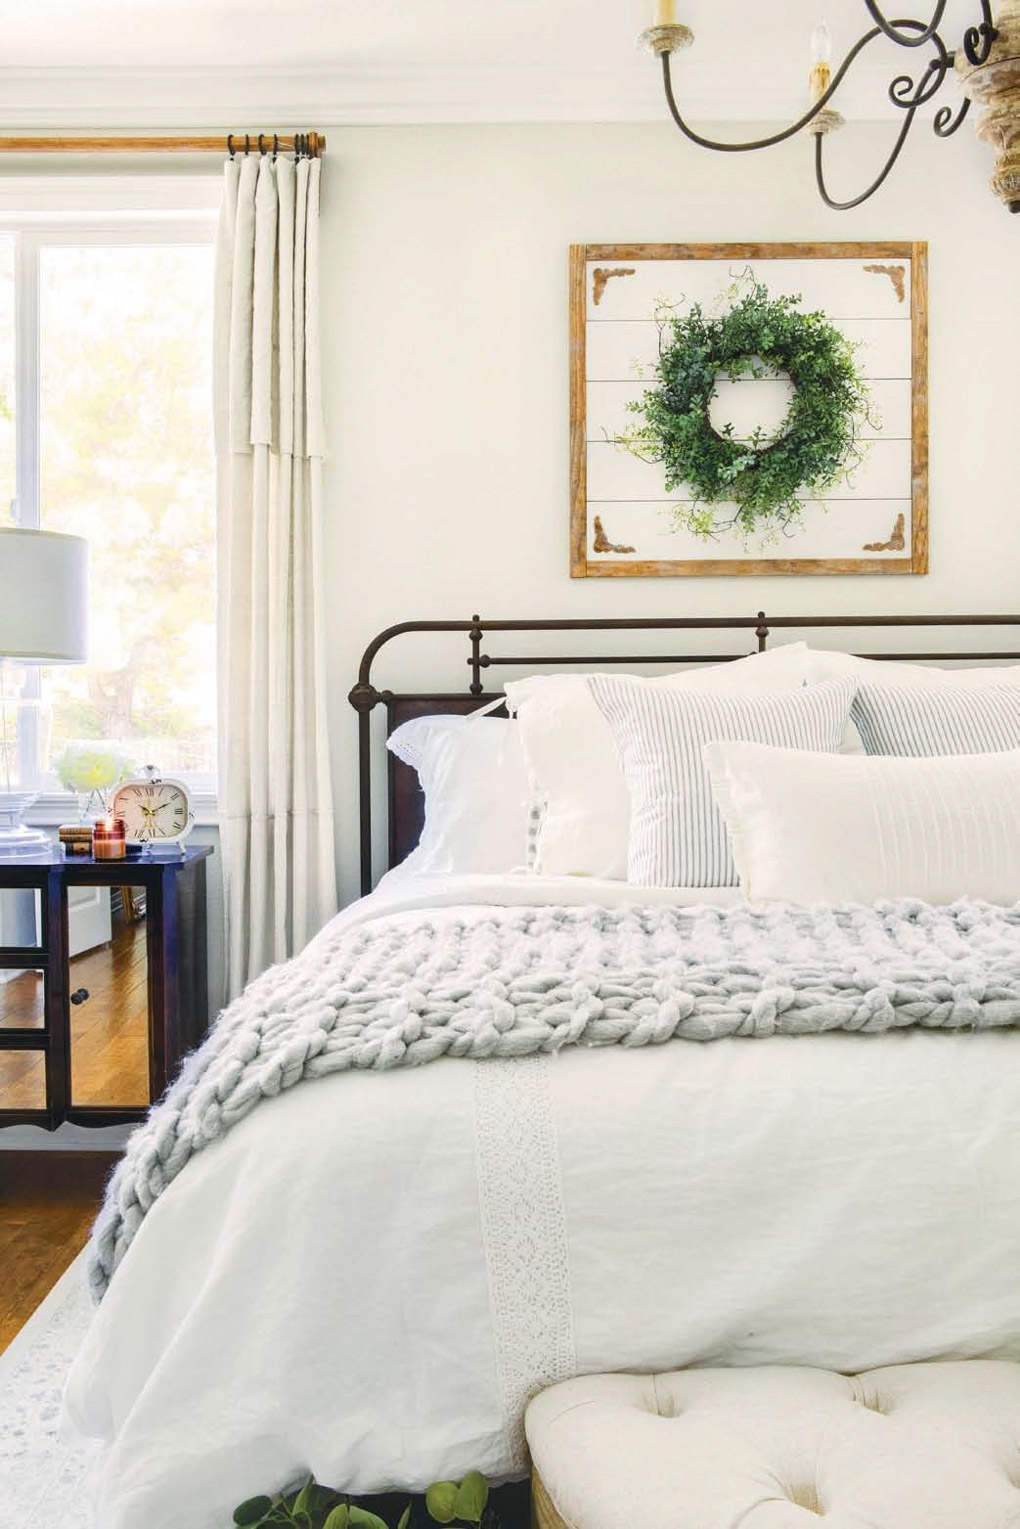 Springfield Barn Home: family-friendly environment that's cozy and welcoming, comfortable and relaxed